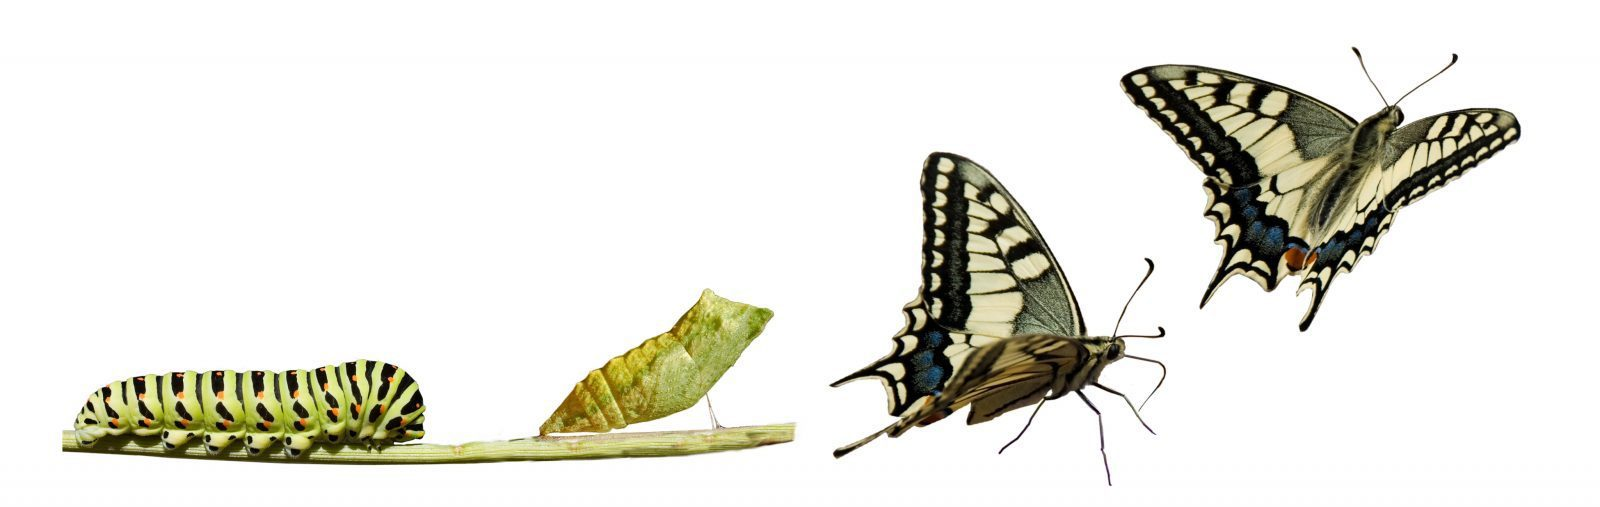 catepillar becomes a buterfly